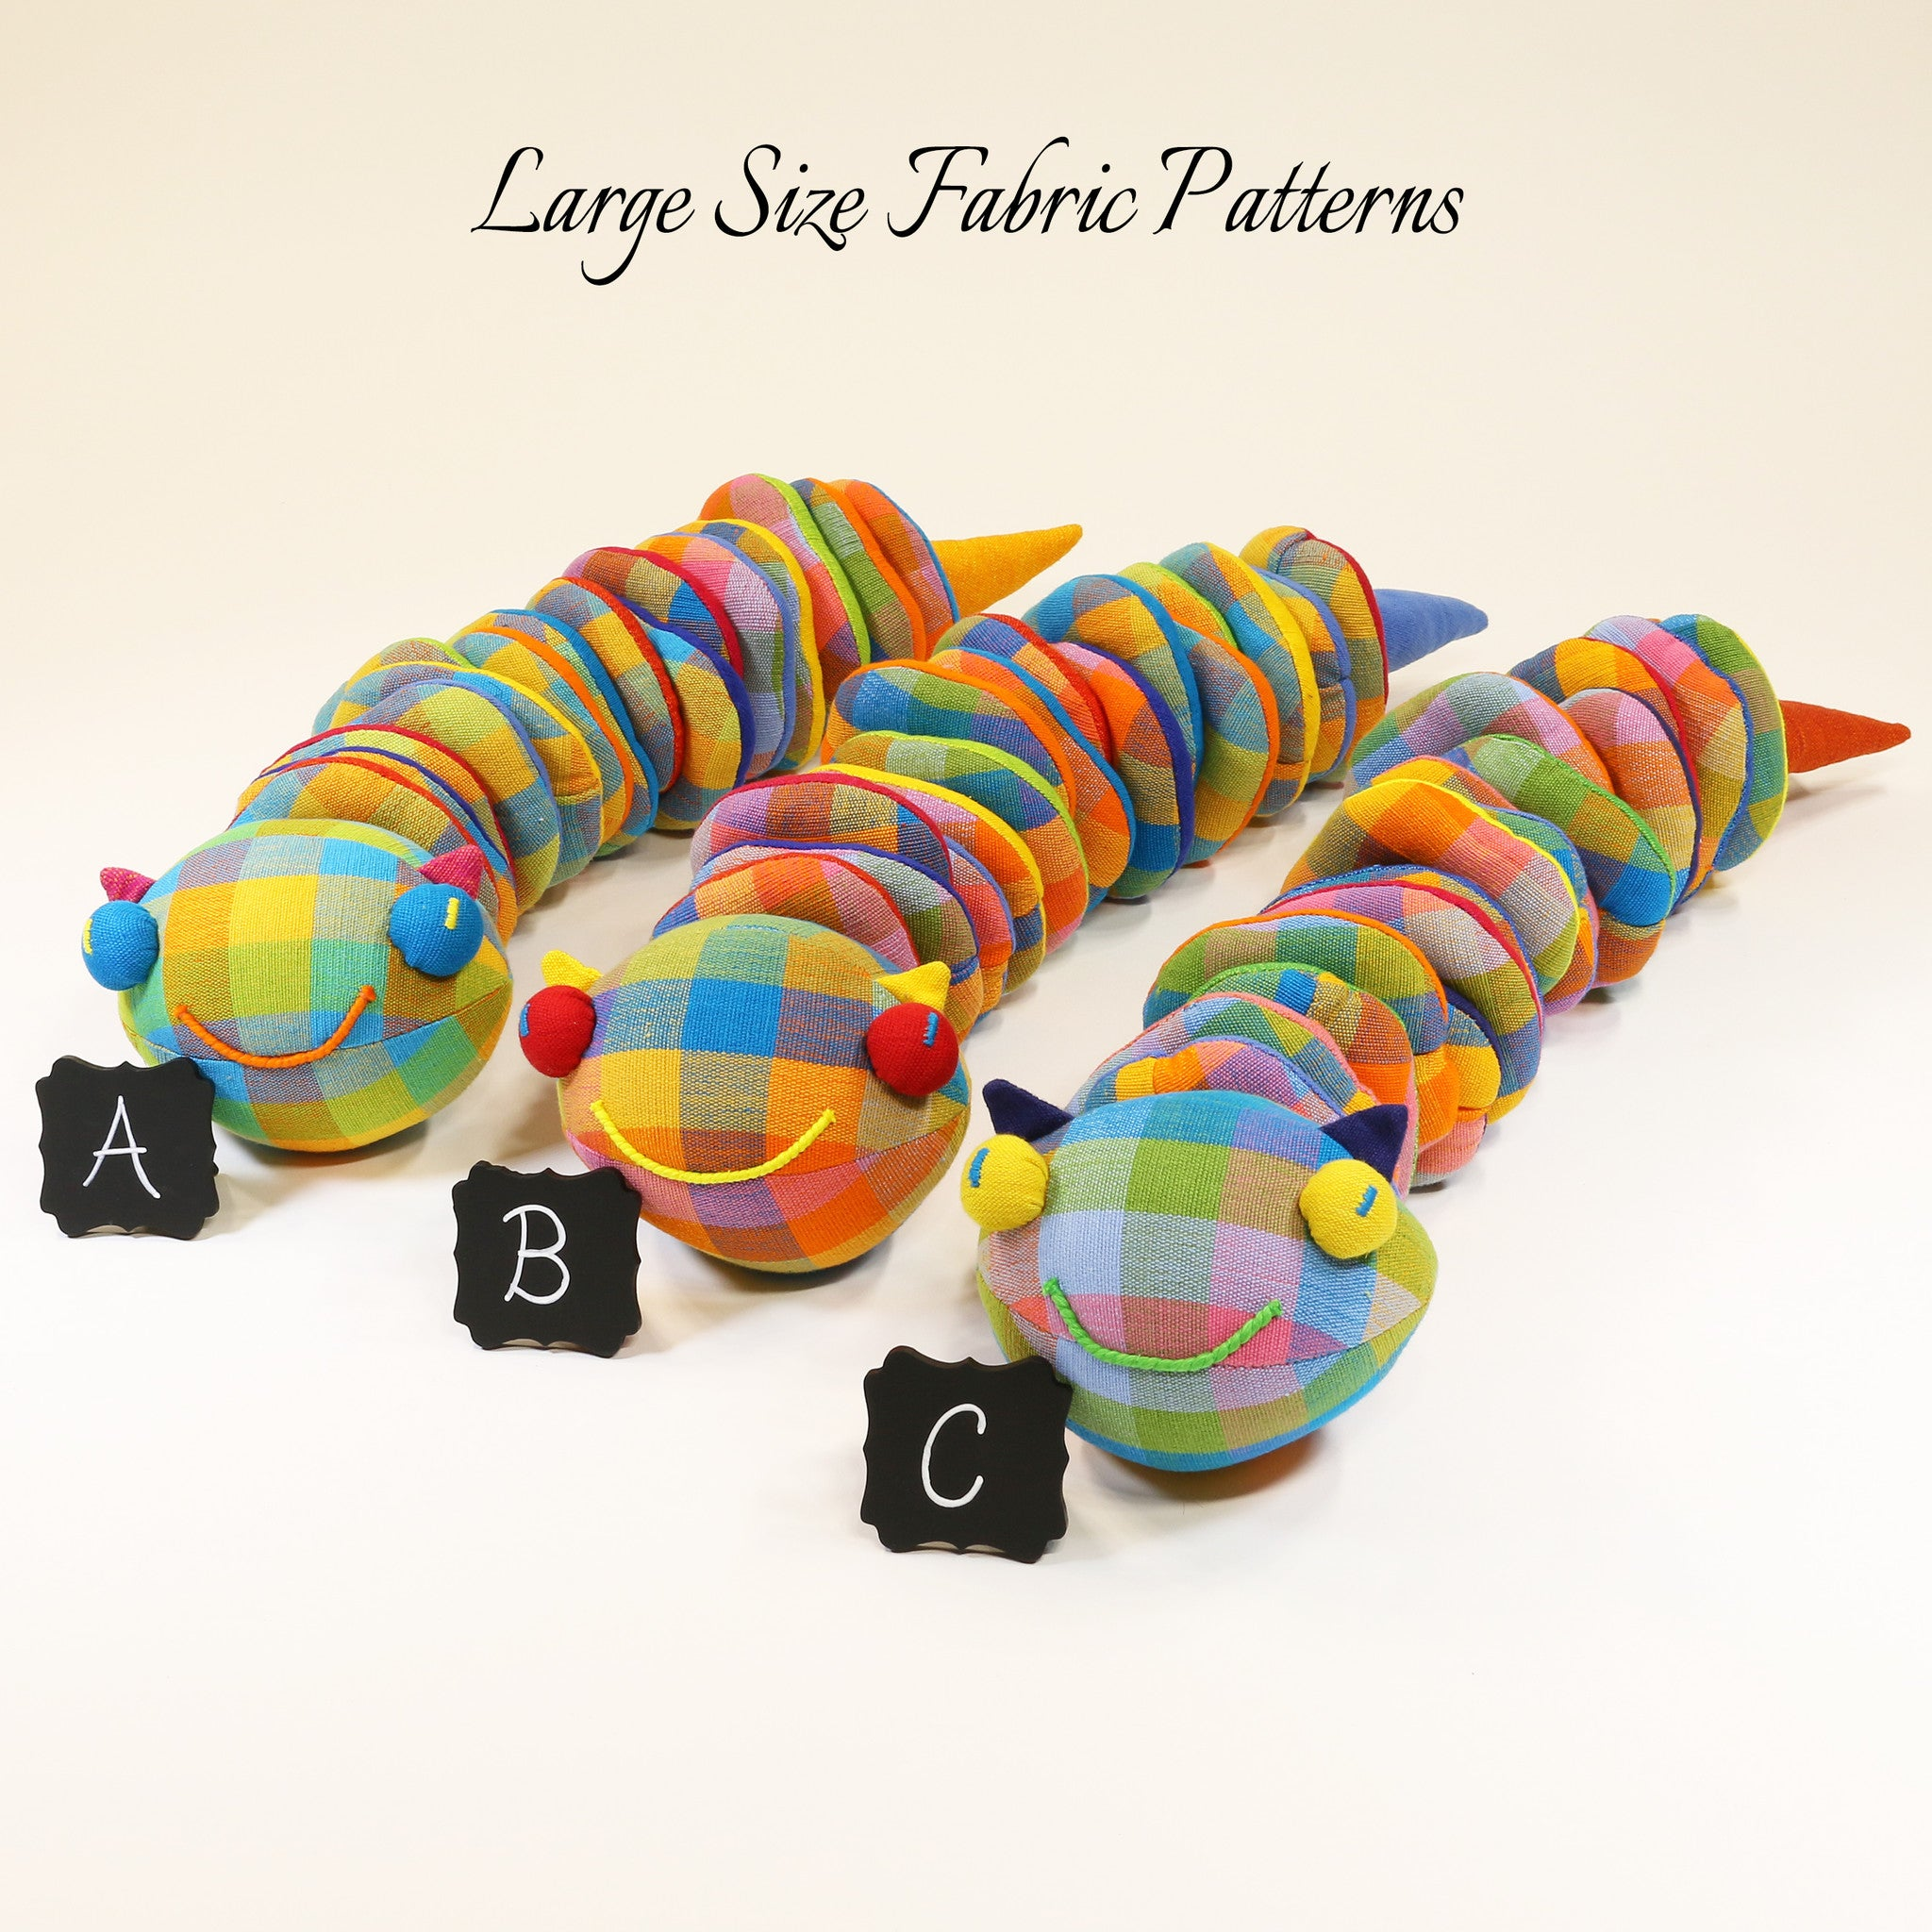 Casey, the Caterpillar – large size fabric patterns shown